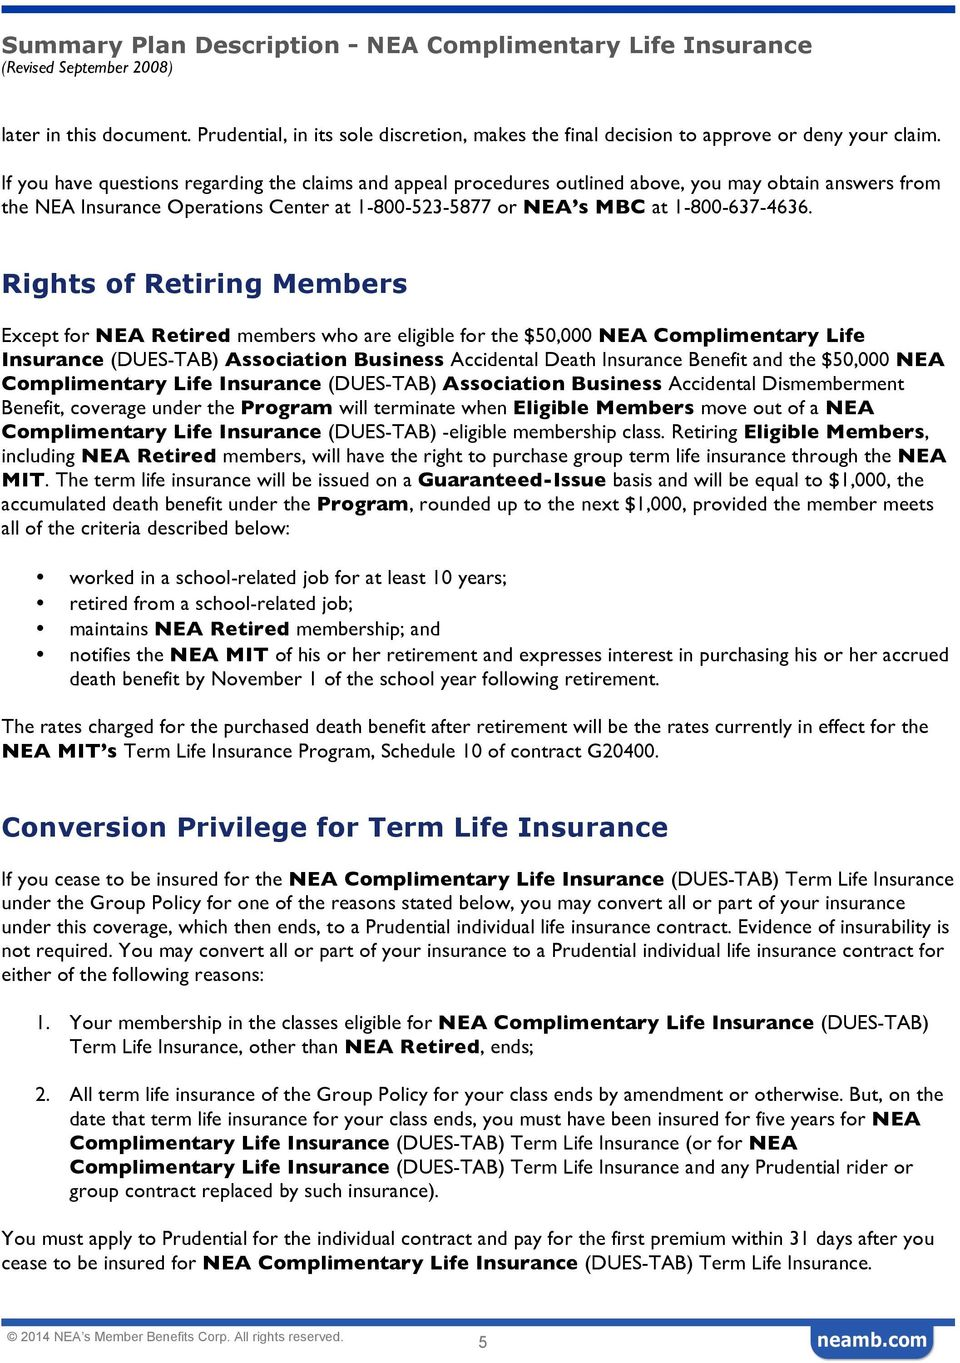 Rights of Retiring Members Except for NEA Retired members who are eligible for the $50,000 NEA Complimentary Life Insurance (DUES-TAB) Association Business Accidental Death Insurance Benefit and the